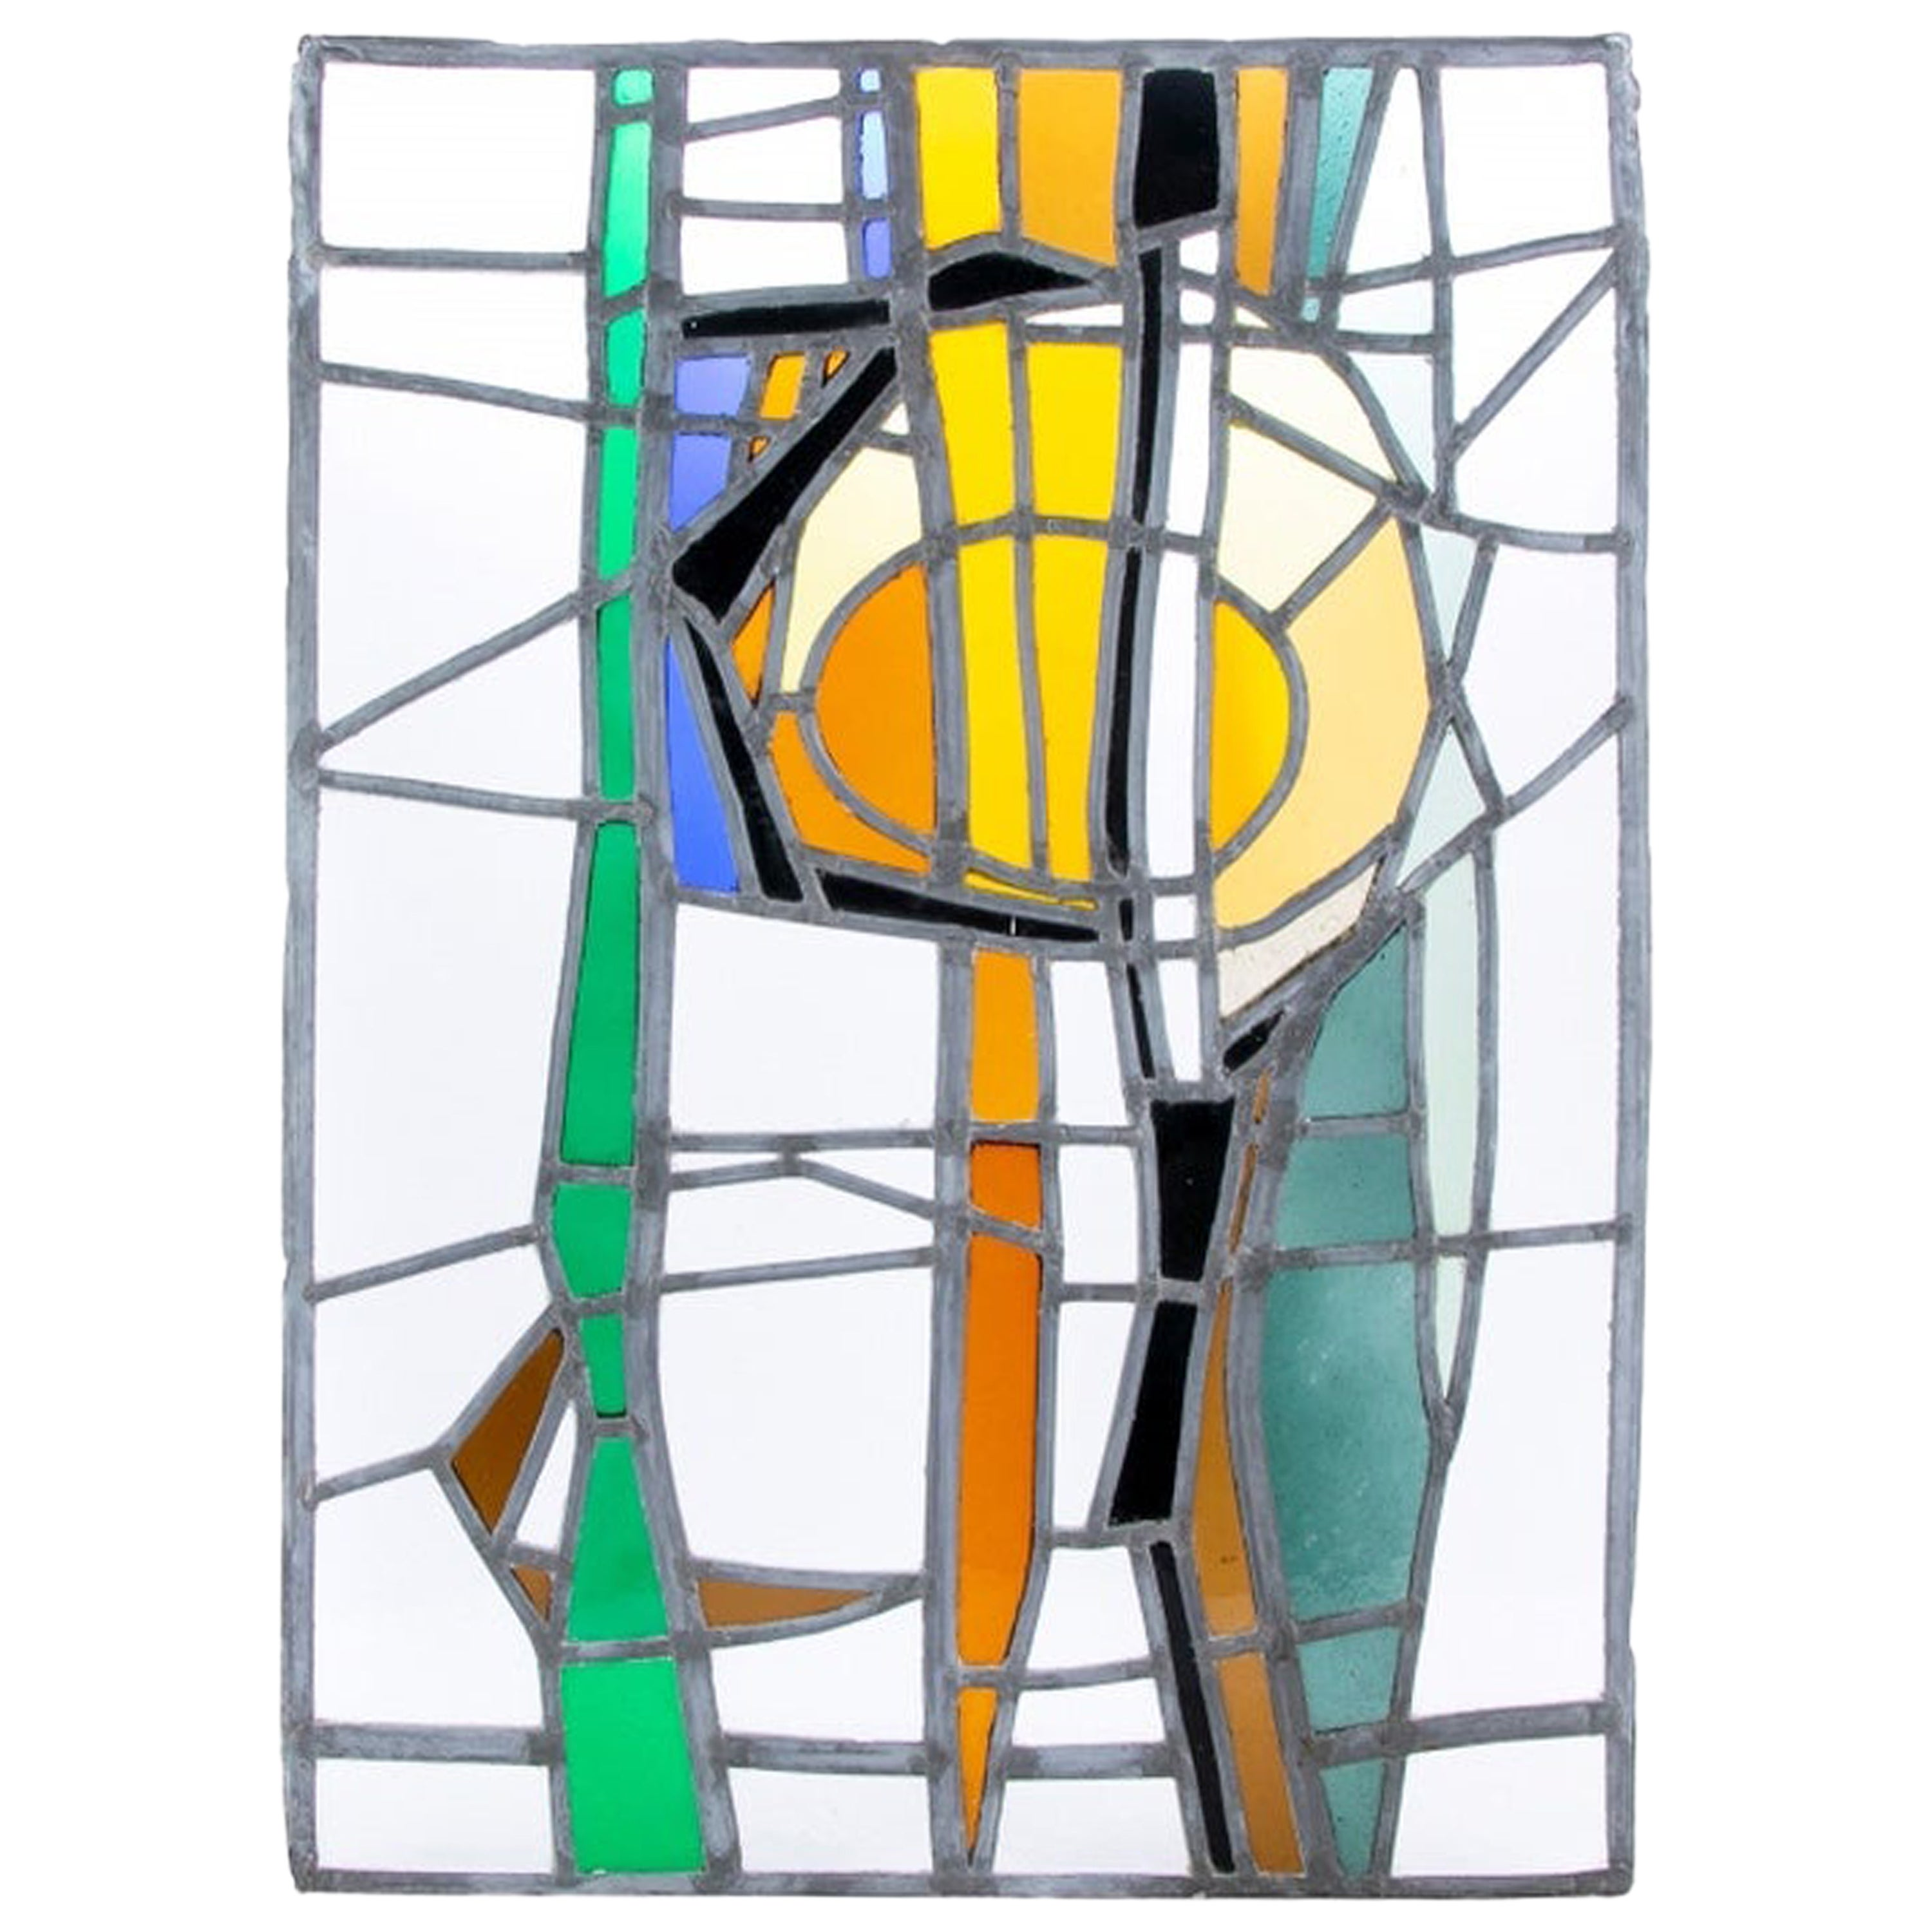 Jean-Jacques Duval 'French/American' Vintage Abstract Stained Glass P